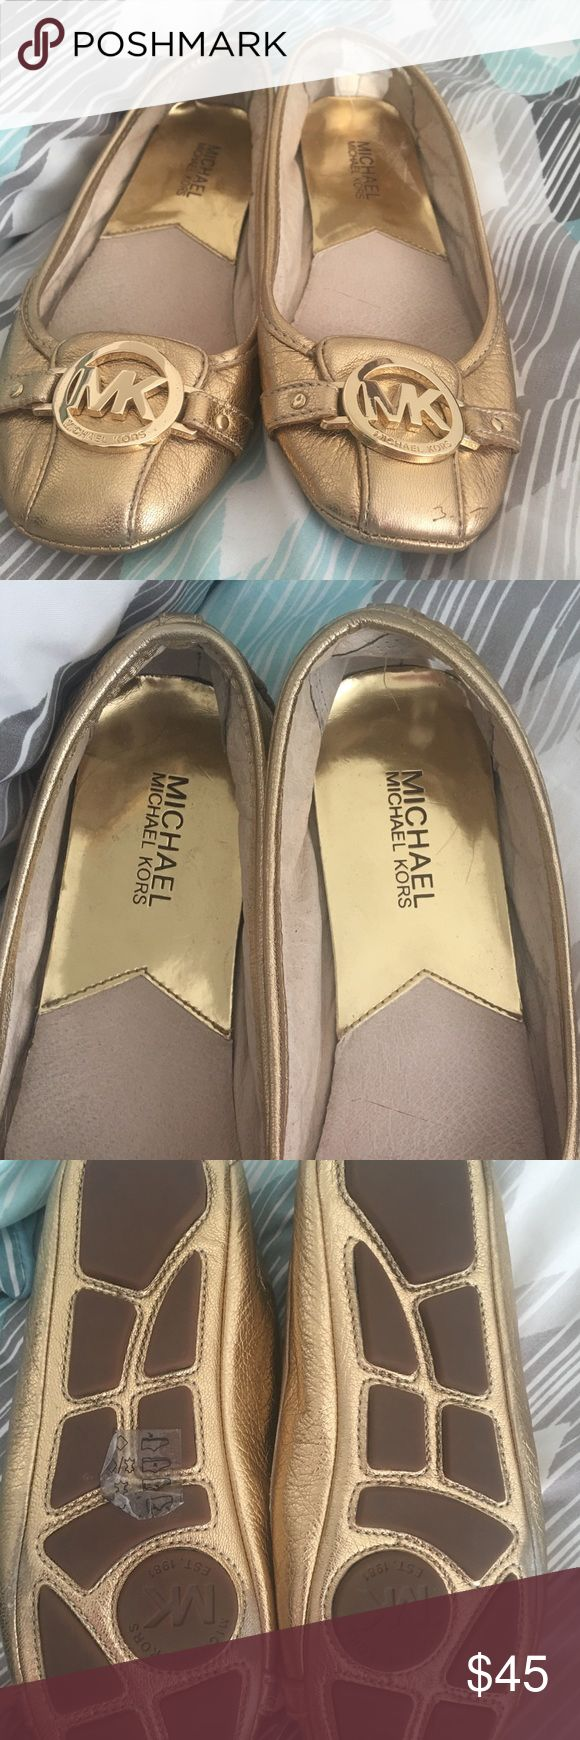 Michael Kors Gold Metallic Ballet Flat size 7 These are in gently used condition. Have been just sitting in my closet. Purchased for $150! Size 7 Michael Kors Shoes Flats & Loafers